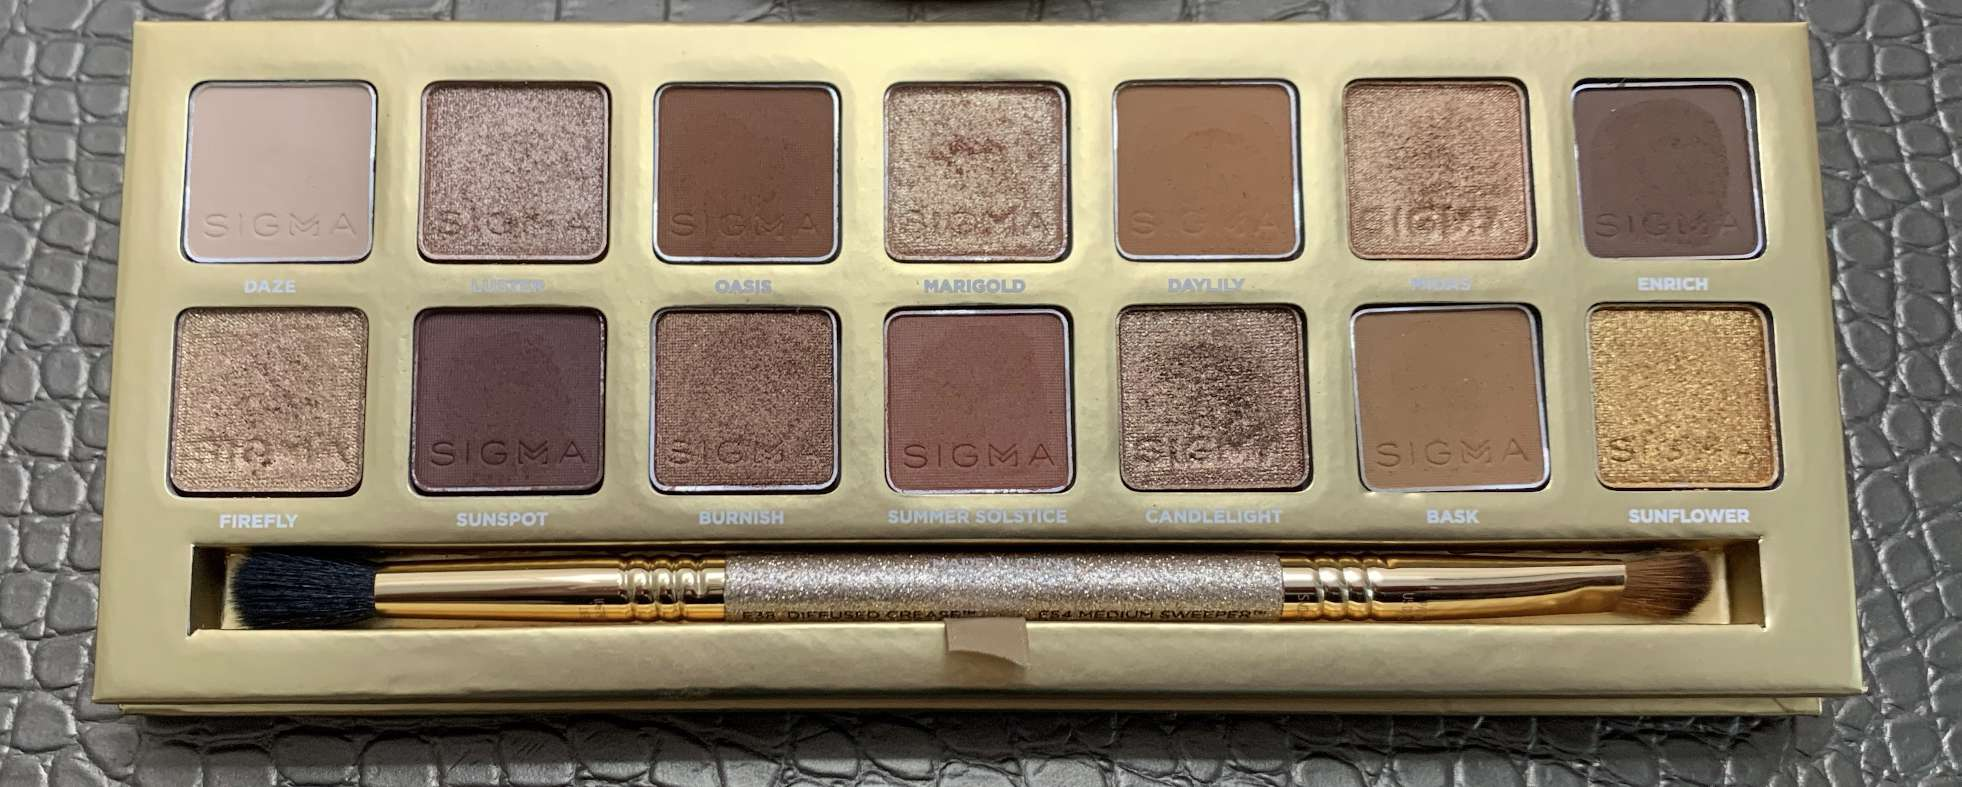 Sigma Beauty Ambiance Palette Review and Swatches on Medium Dark Skin